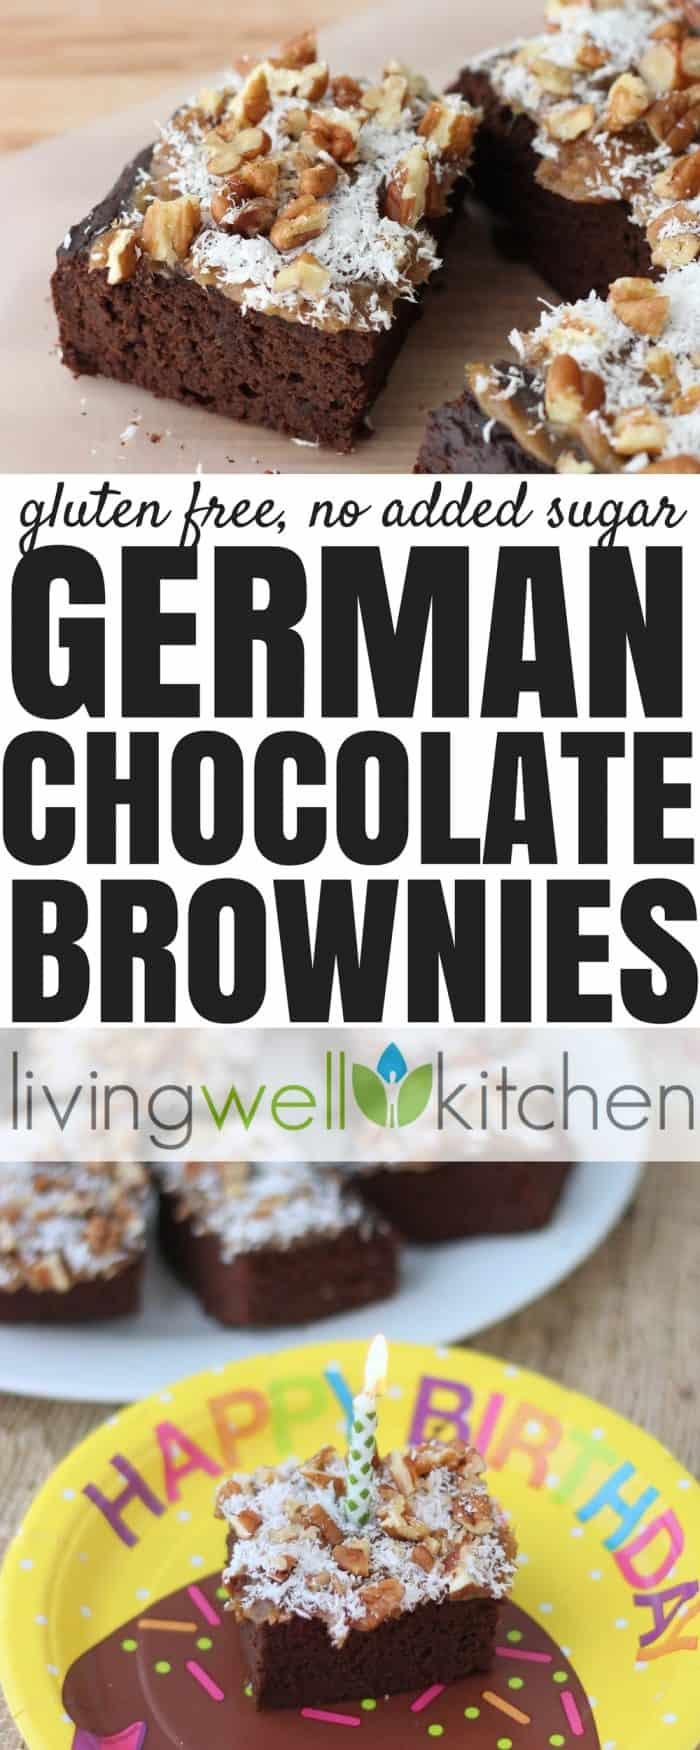 German Chocolate Brownies from @memeinge are black bean brownies sweetened entirely with dates topped with caramel, coconut, and pecans. Heaven!